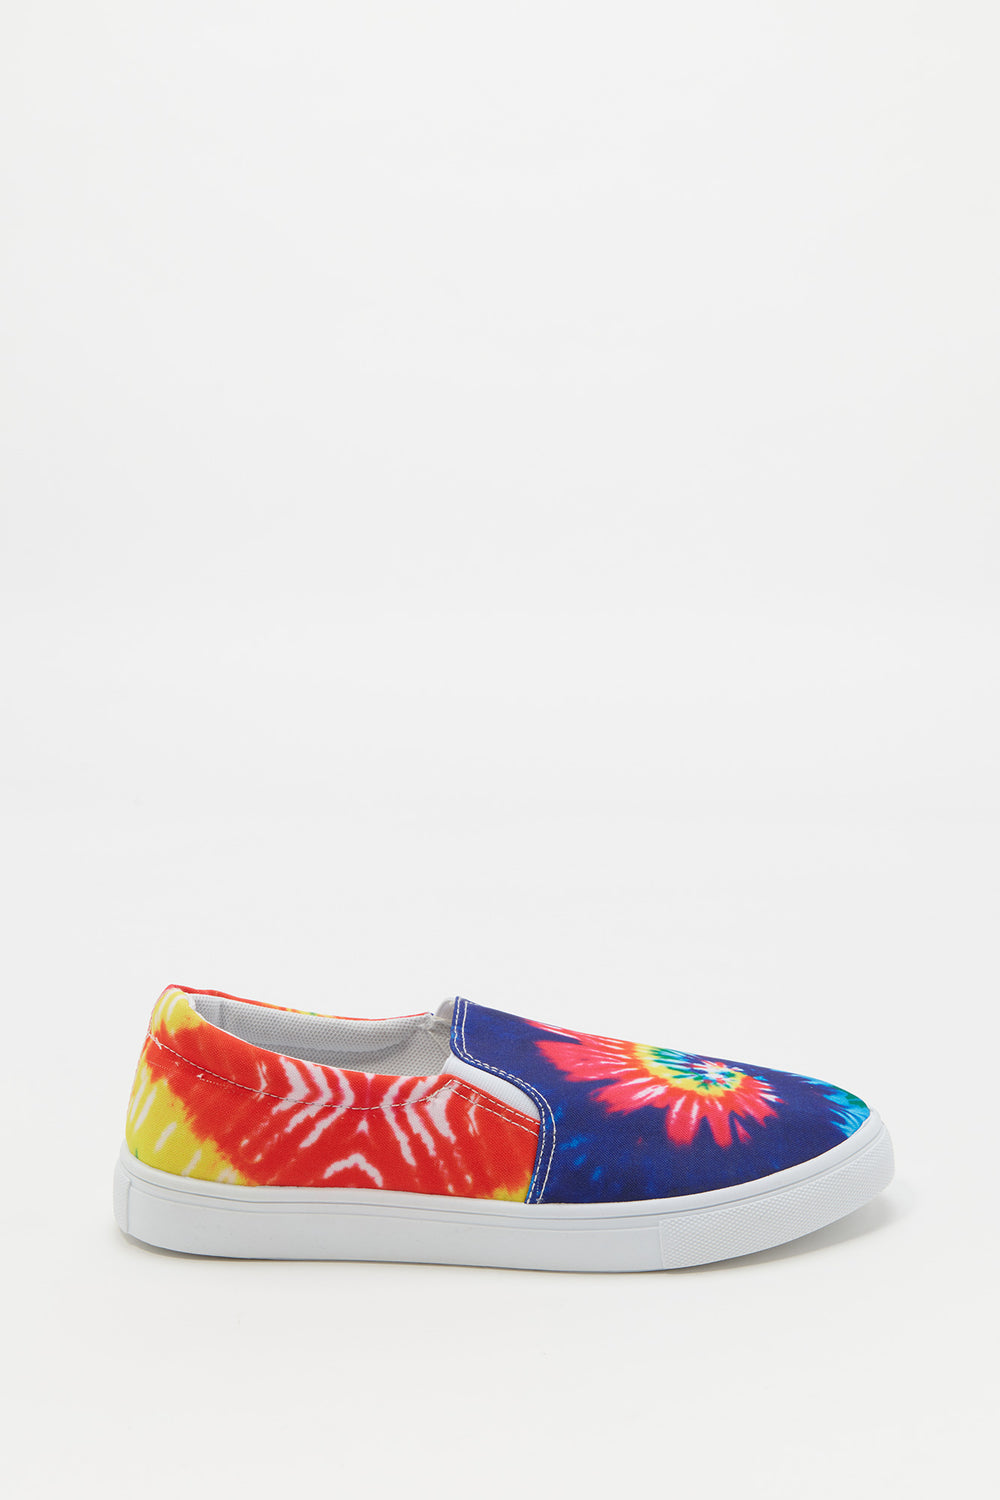 Tie Dye Slip-On Sneaker Multi